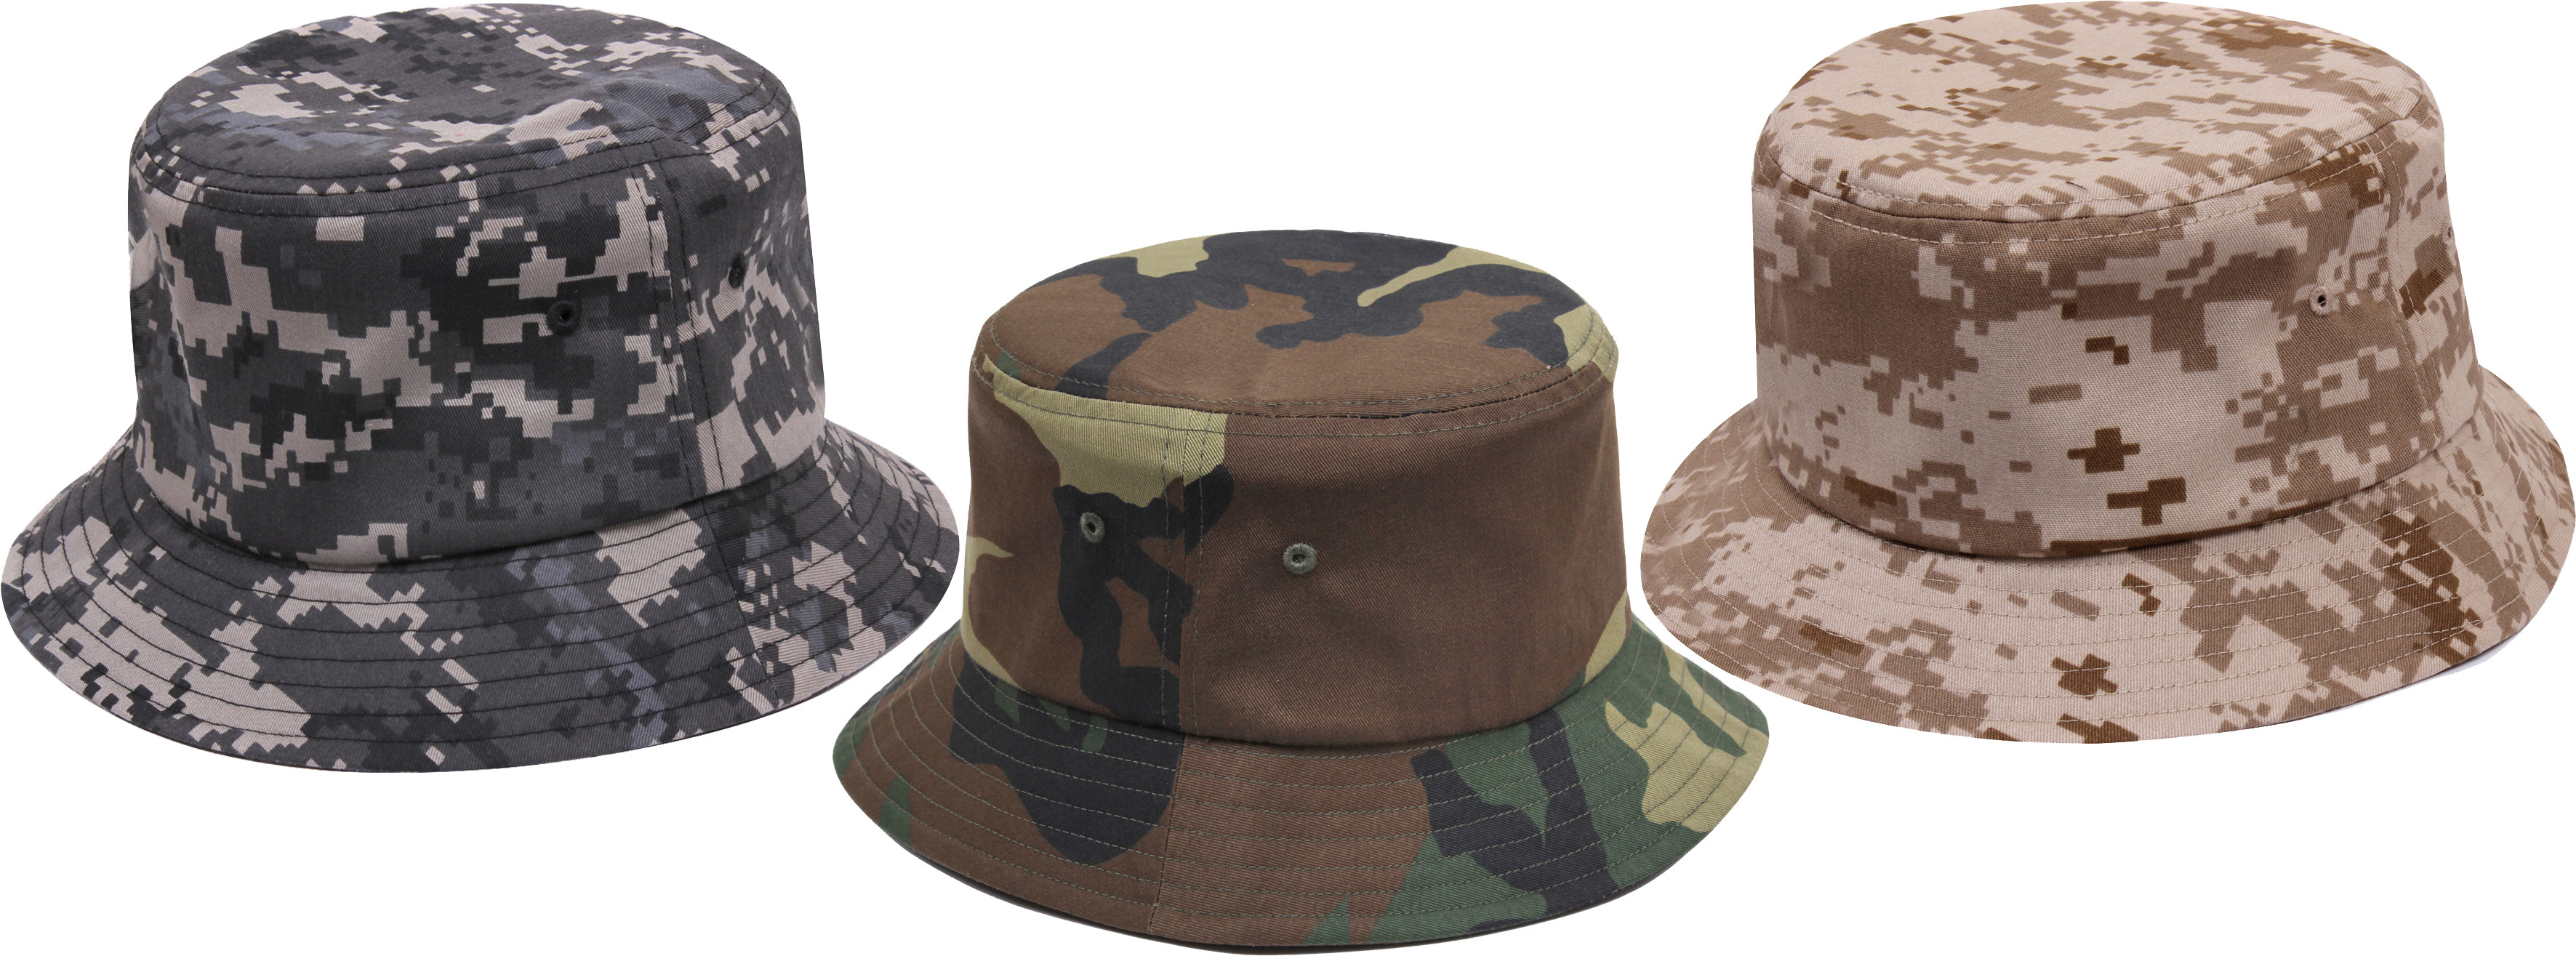 bea6b6f4214 Camouflage Military Classic Bucket Hat